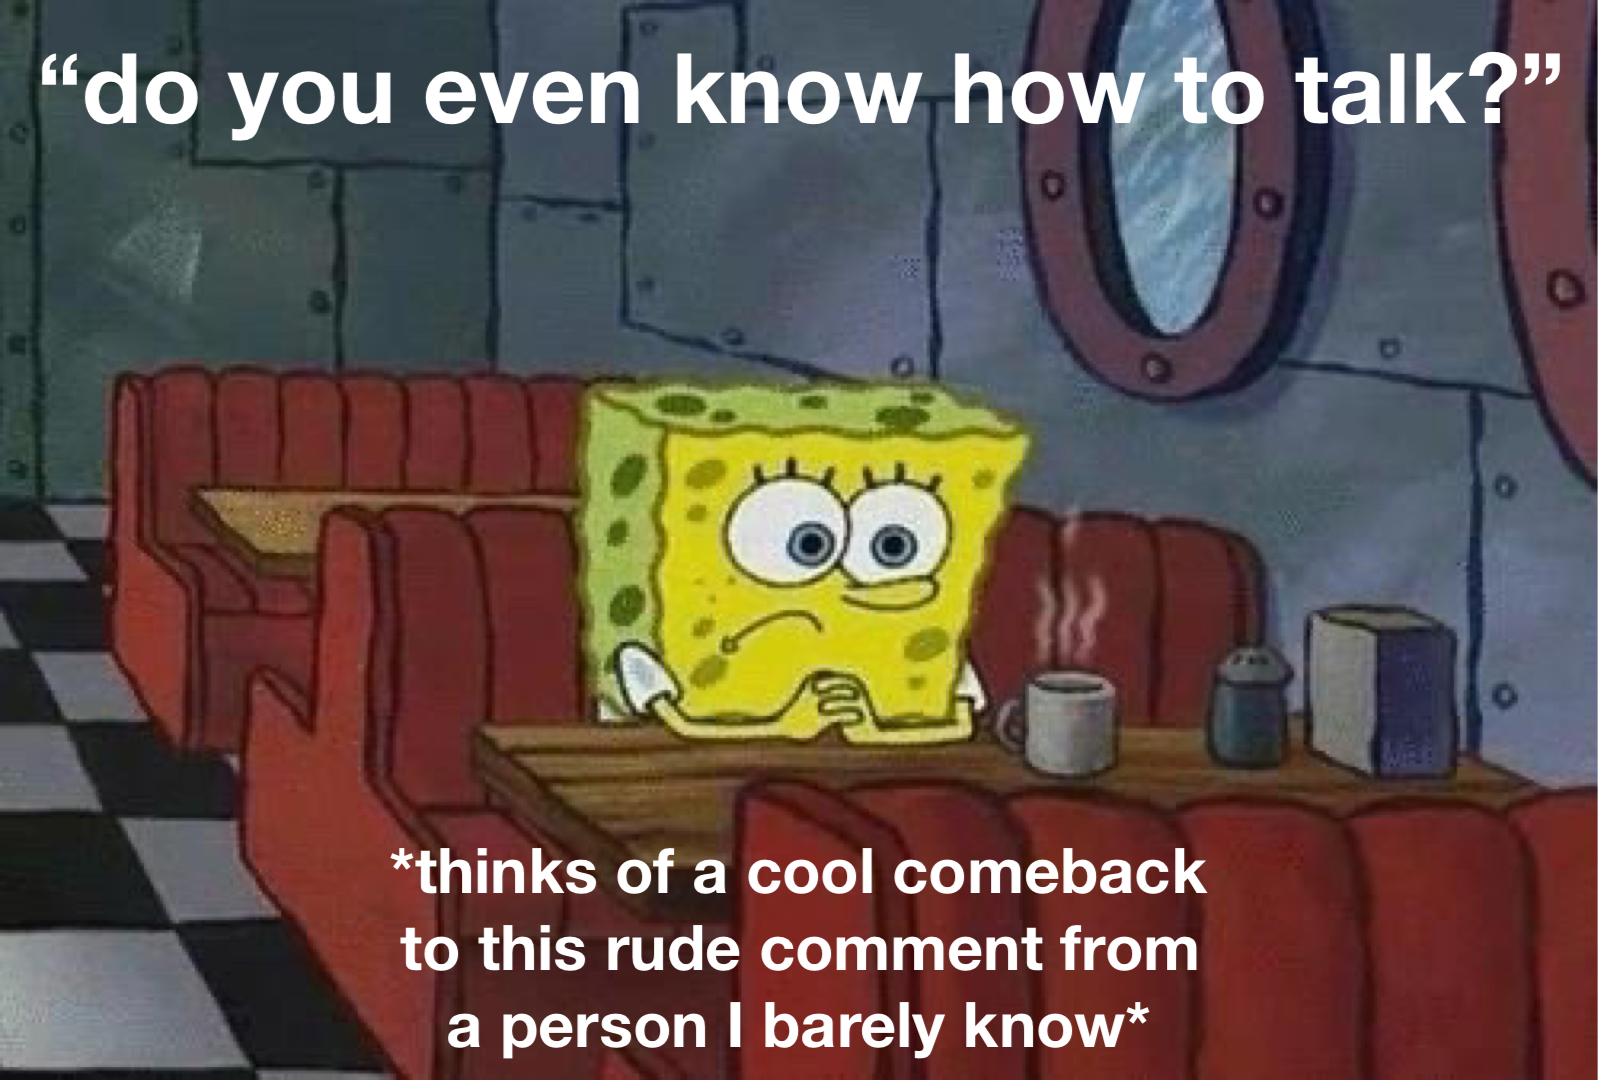 """A meme of SpongeBob Squarepants sitting alone in a booth at a diner, looking discouraged. The top line reads, """"do you even know how to talk?"""" and the bottom reads, """"*thinks of a cool comeback for this rude comment from a person I barely know."""" Meme by the author."""